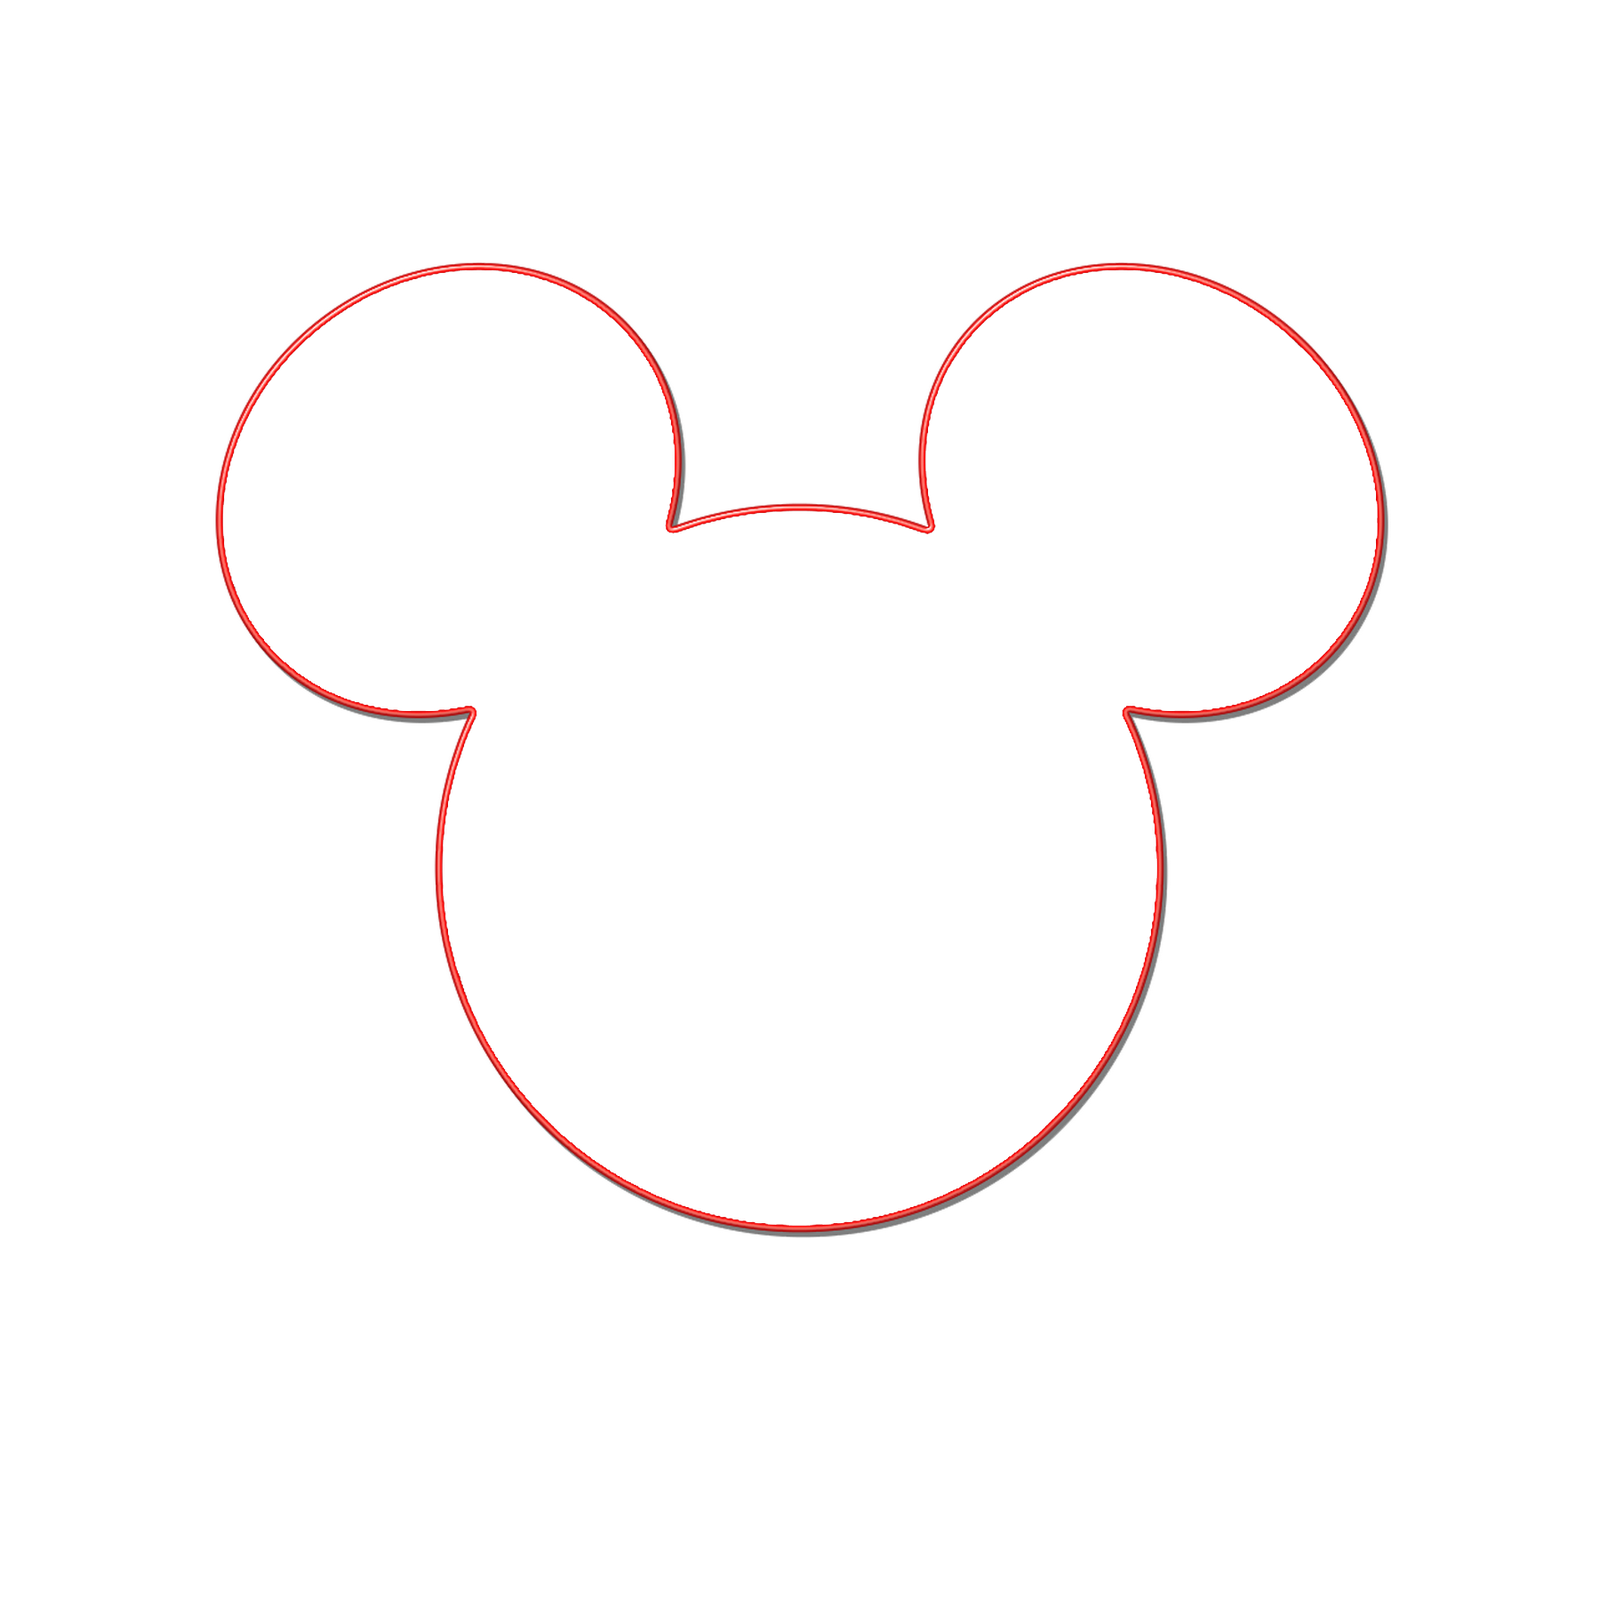 Free clipart download clip. Mickey mouse head outline png graphic freeuse download